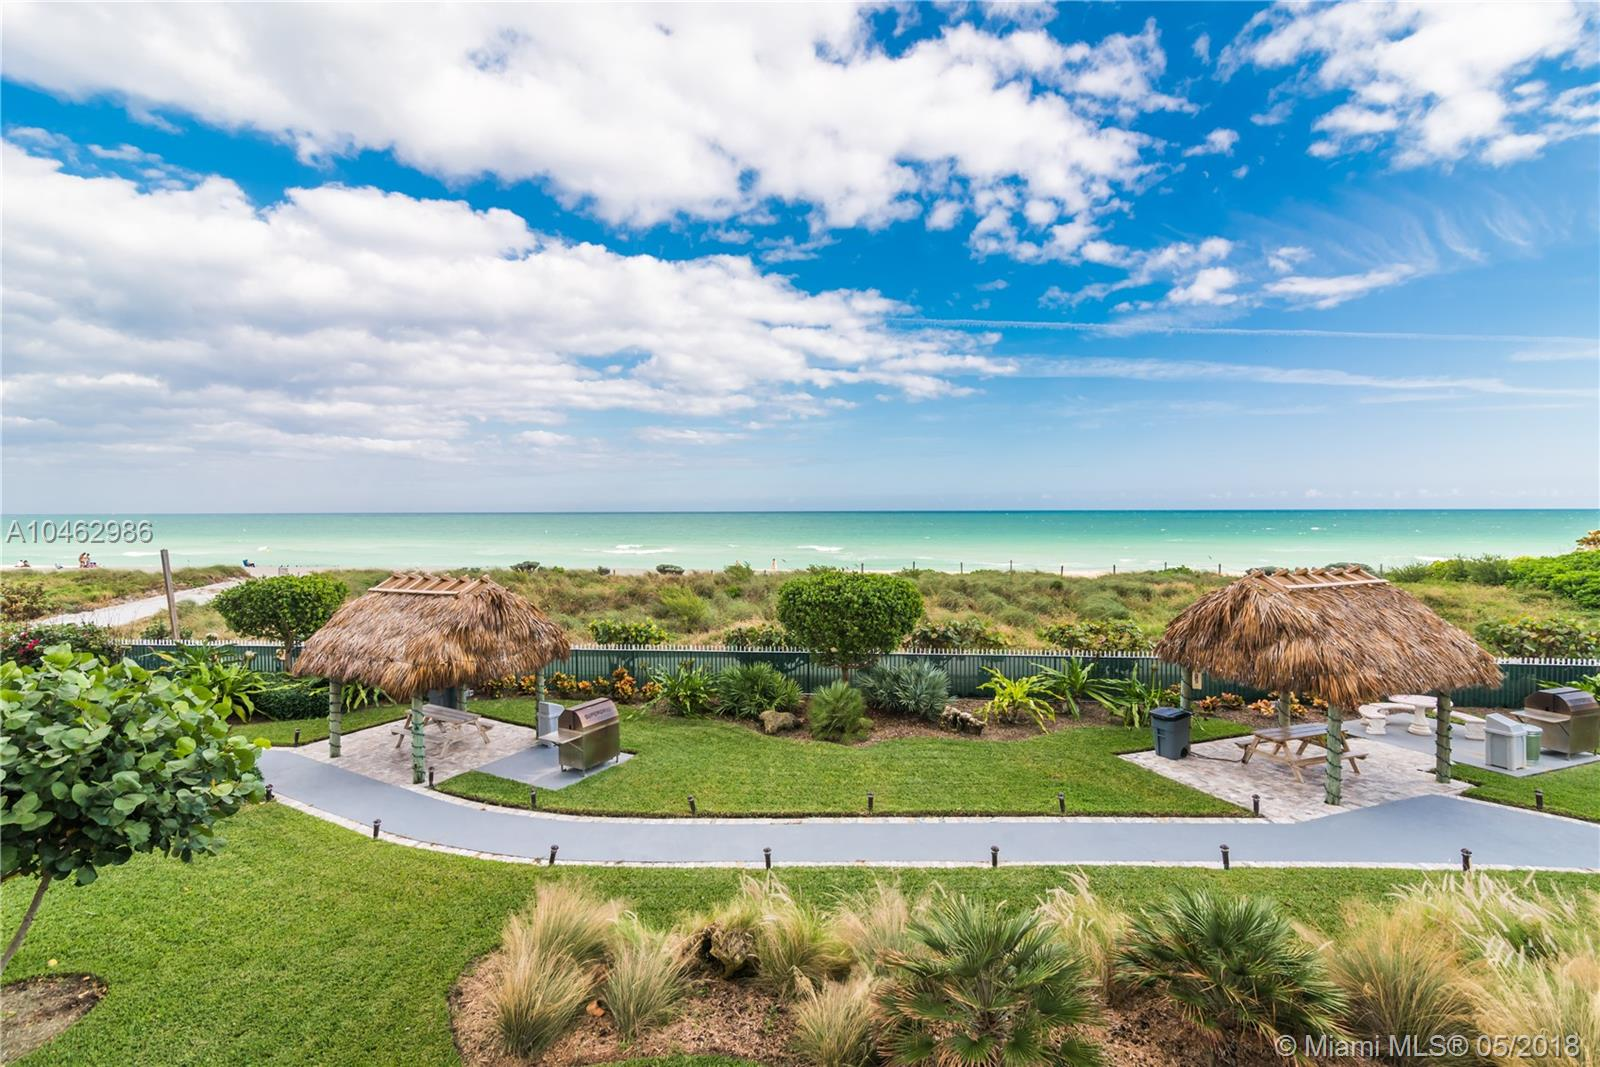 New Listing +Ógé¼Gç£ New Price - $100K Reduction +Ógé¼Gç£ Ready To Sell! Close To The Beach With Captivating Direct Ocean Views. This Luxurious Two Bedrooms Two Baths Recently Remodeled Condo Boasts Spacious Bedrooms And A Modern Kitchen With Granite Countertops. Hardwood Floors Throughout The Living Areas With Built Out Closets In The Master Bedroom. Enjoy The Tiki Huts On Premise While Enjoying All The Amenities Miami Beach Has To Offer.